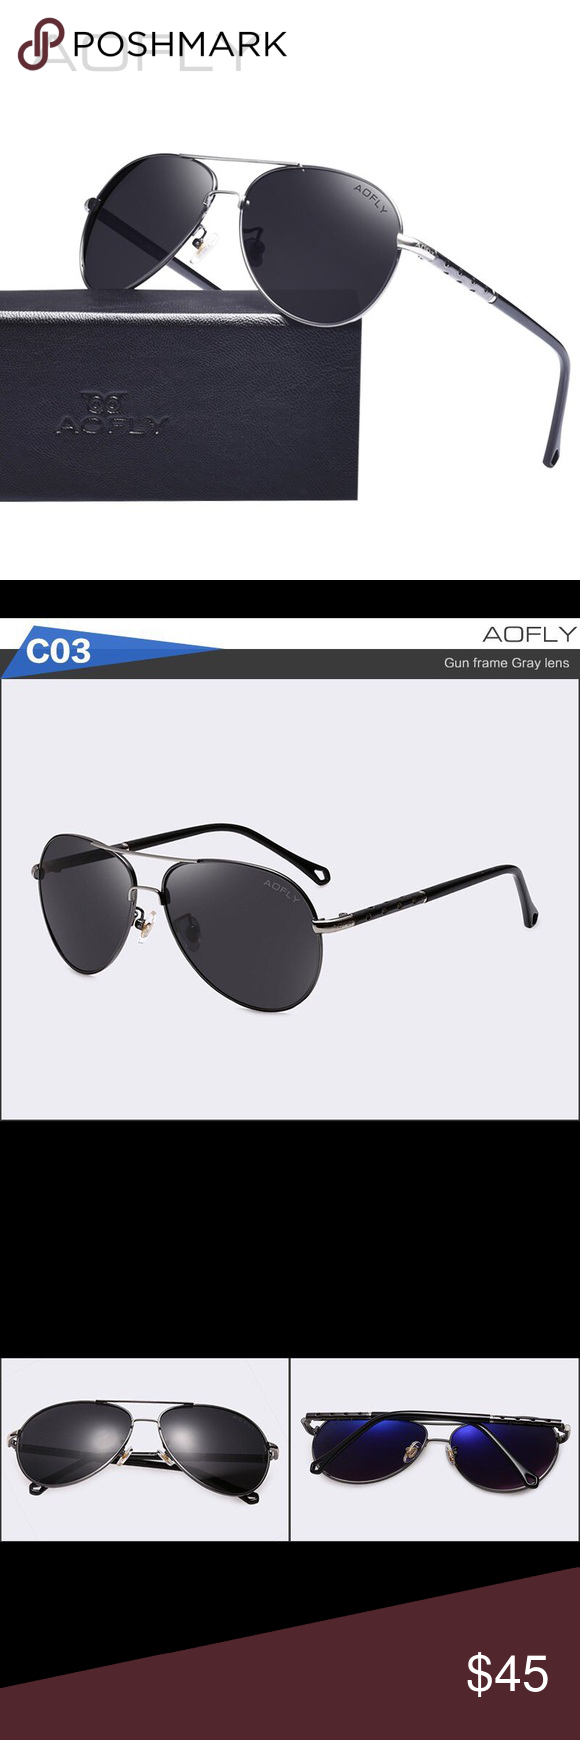 4330e760ff4 AOFLY Authentic Men s Aviator Sunglasses High quality material black and  gun metal frame with gray lenses